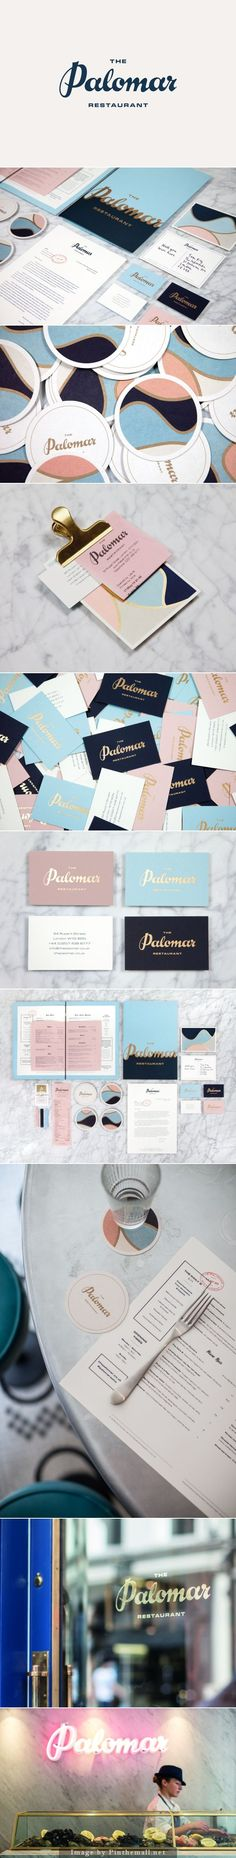 Palomar restaurant | by Here | branding